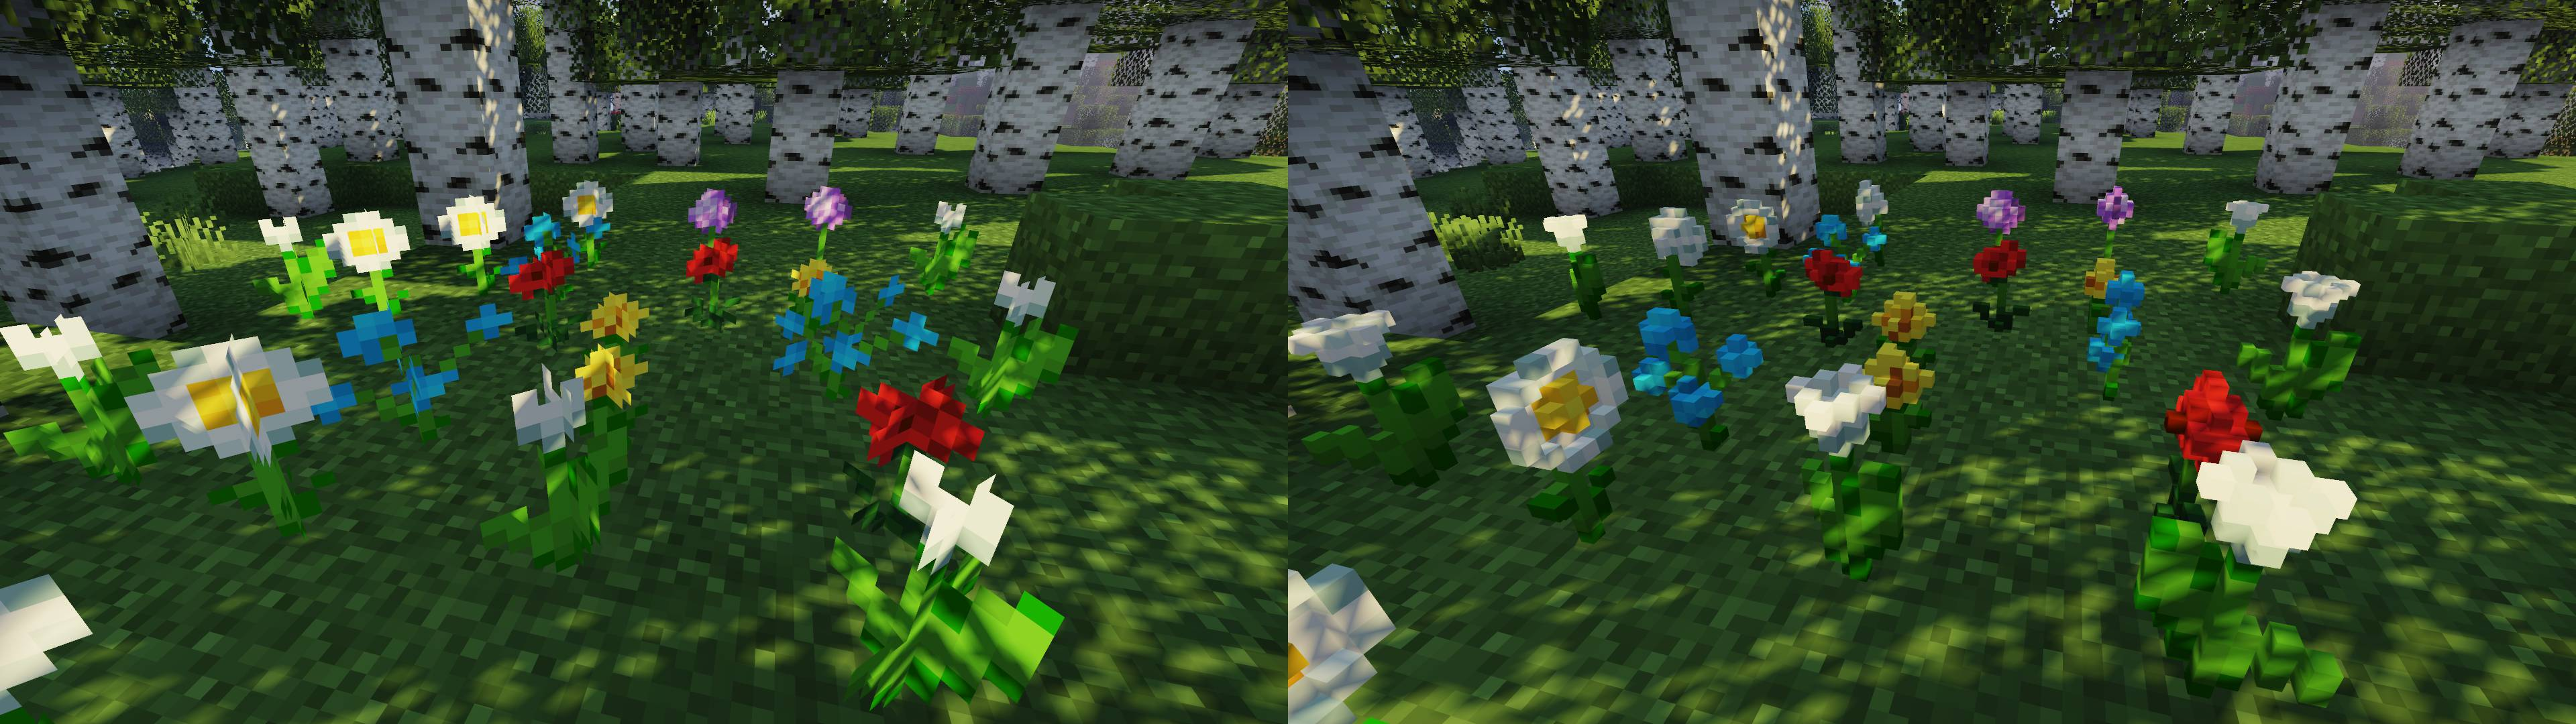 Aestheticism mod for minecraft 23